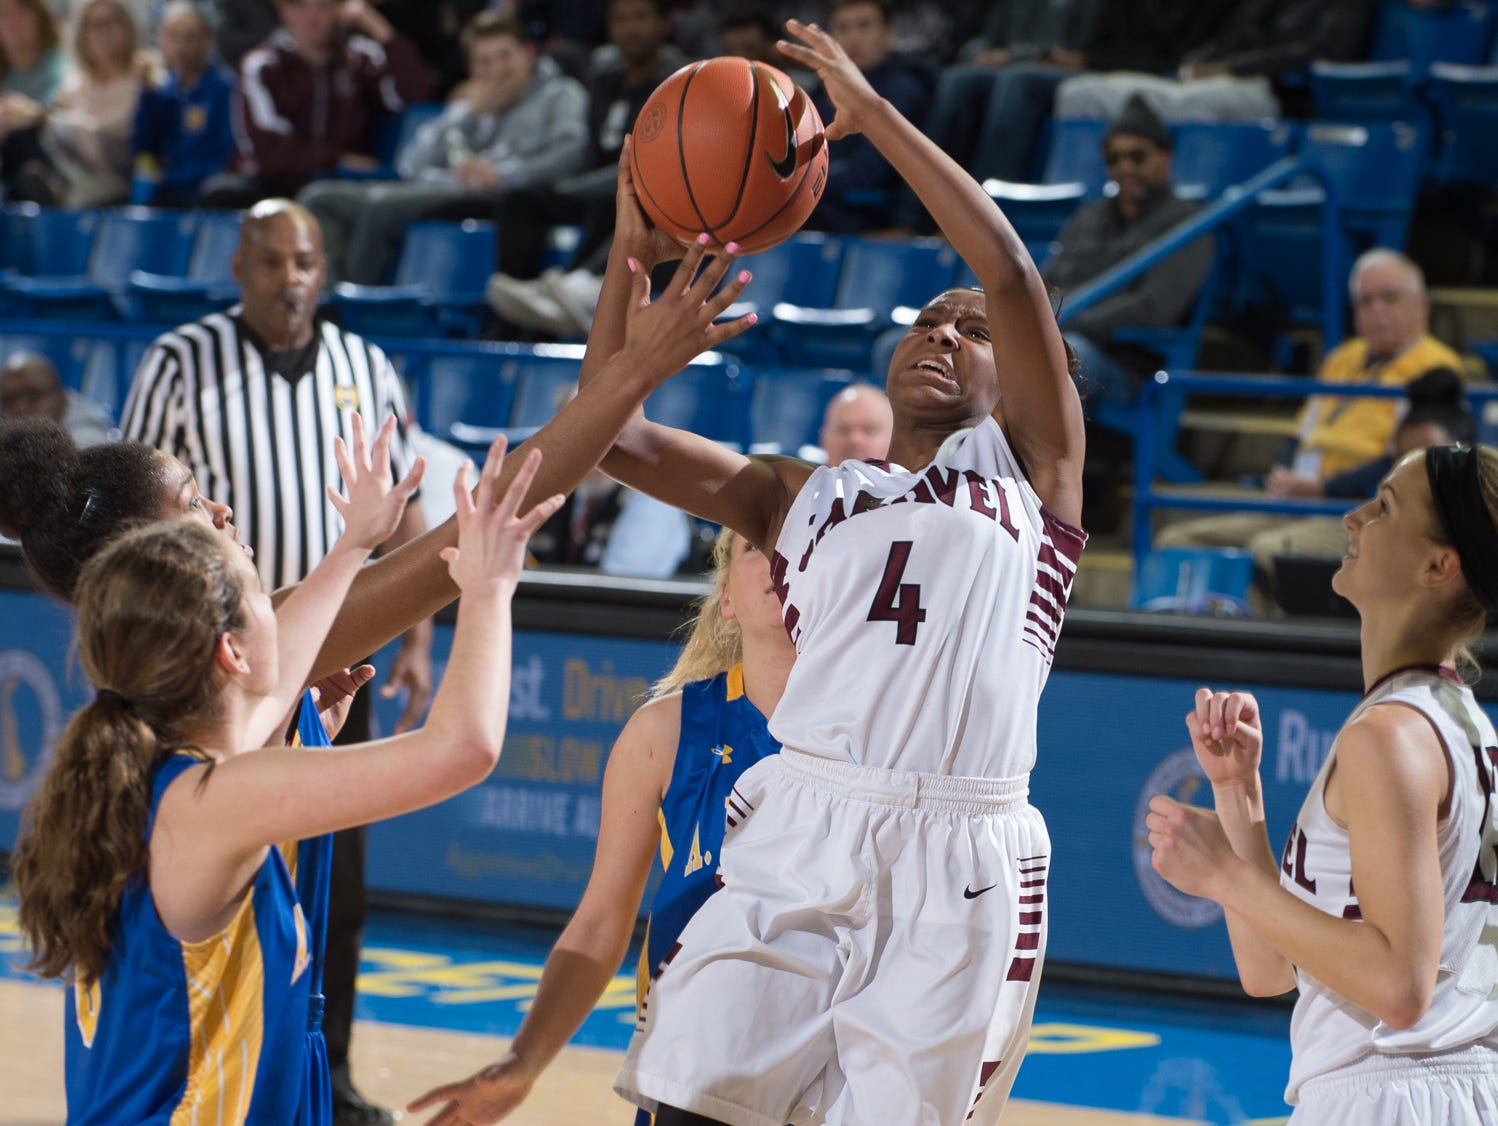 Caravel's Sasha Marvel (4) goes up for a shot in the quarterfinals of DIAA Girls Basketball Tournament at the University of Delaware against A.I. duPont.